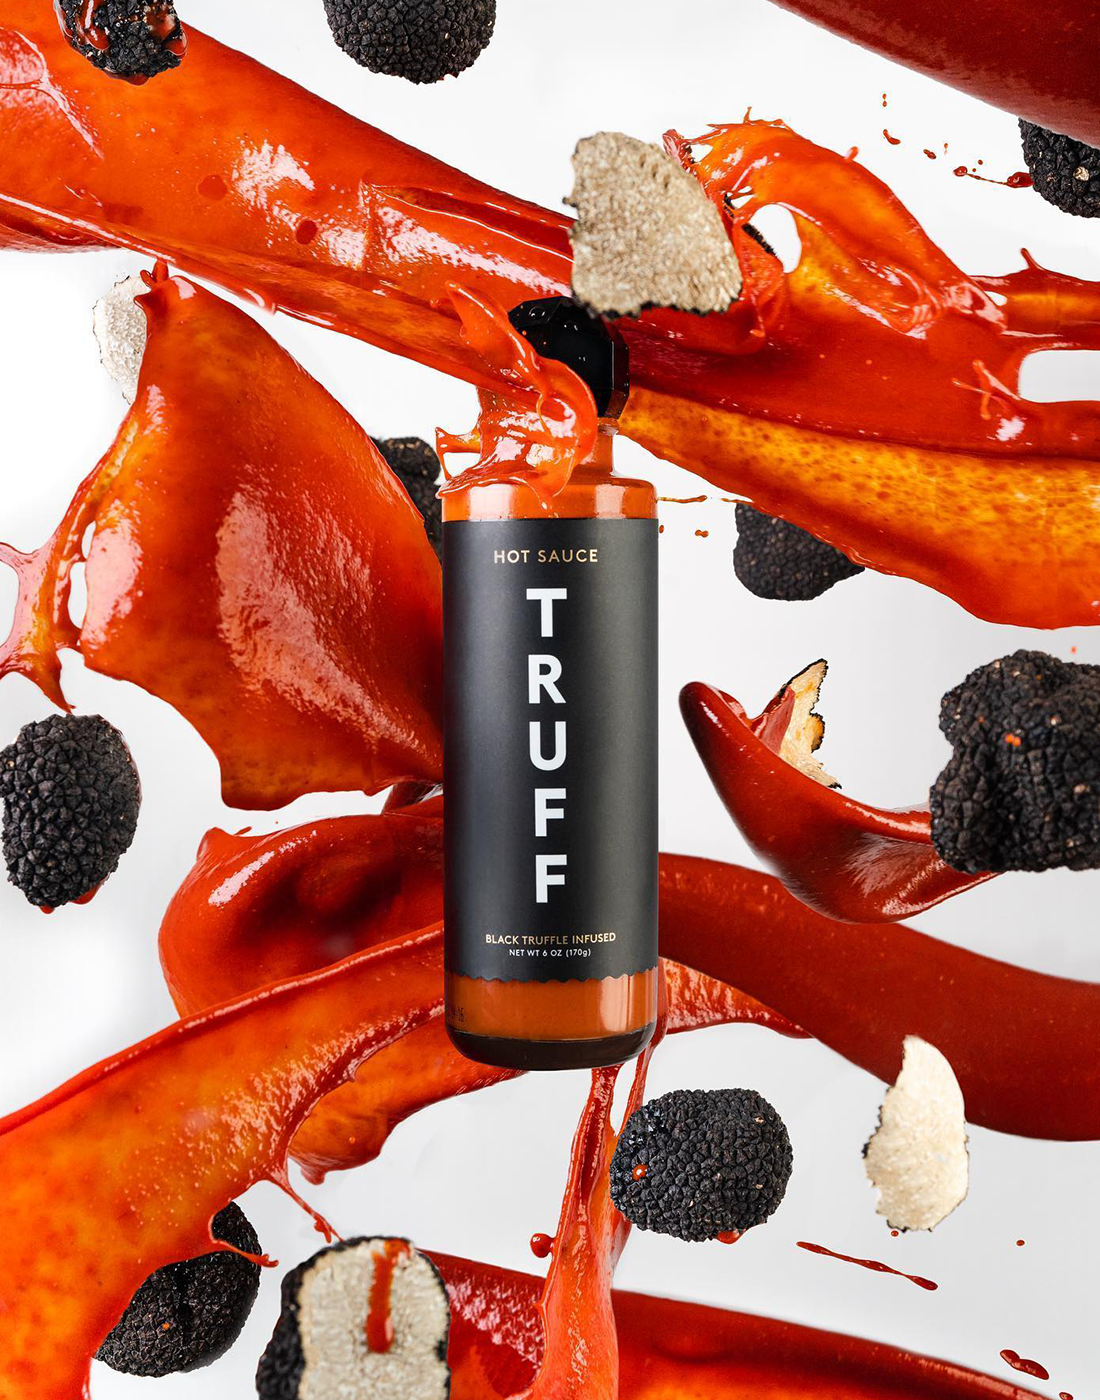 TRUFF Hot Sauce Variety Pack